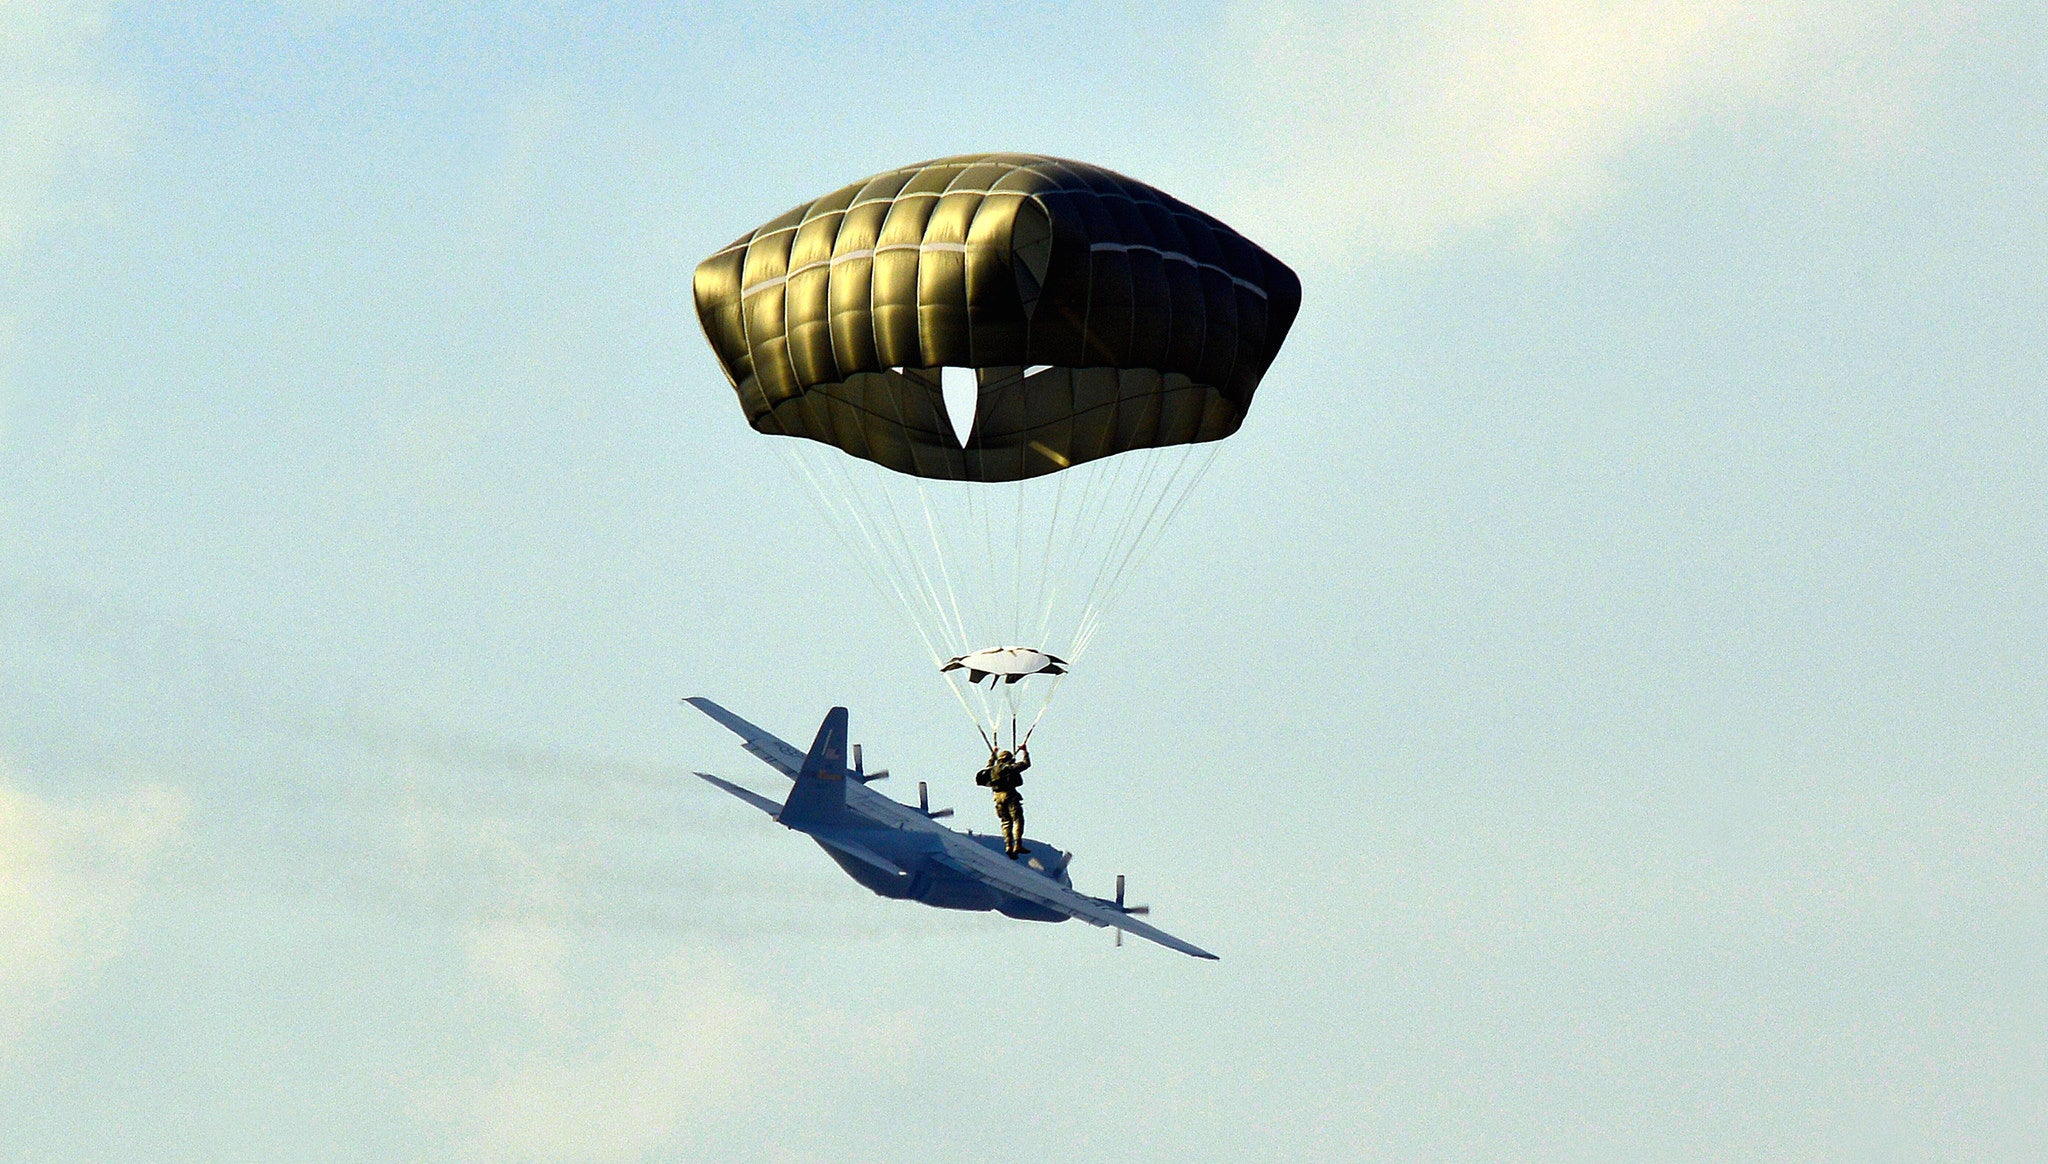 Cool photo of a paratrooper makes it look like he's surfing an aeroplane